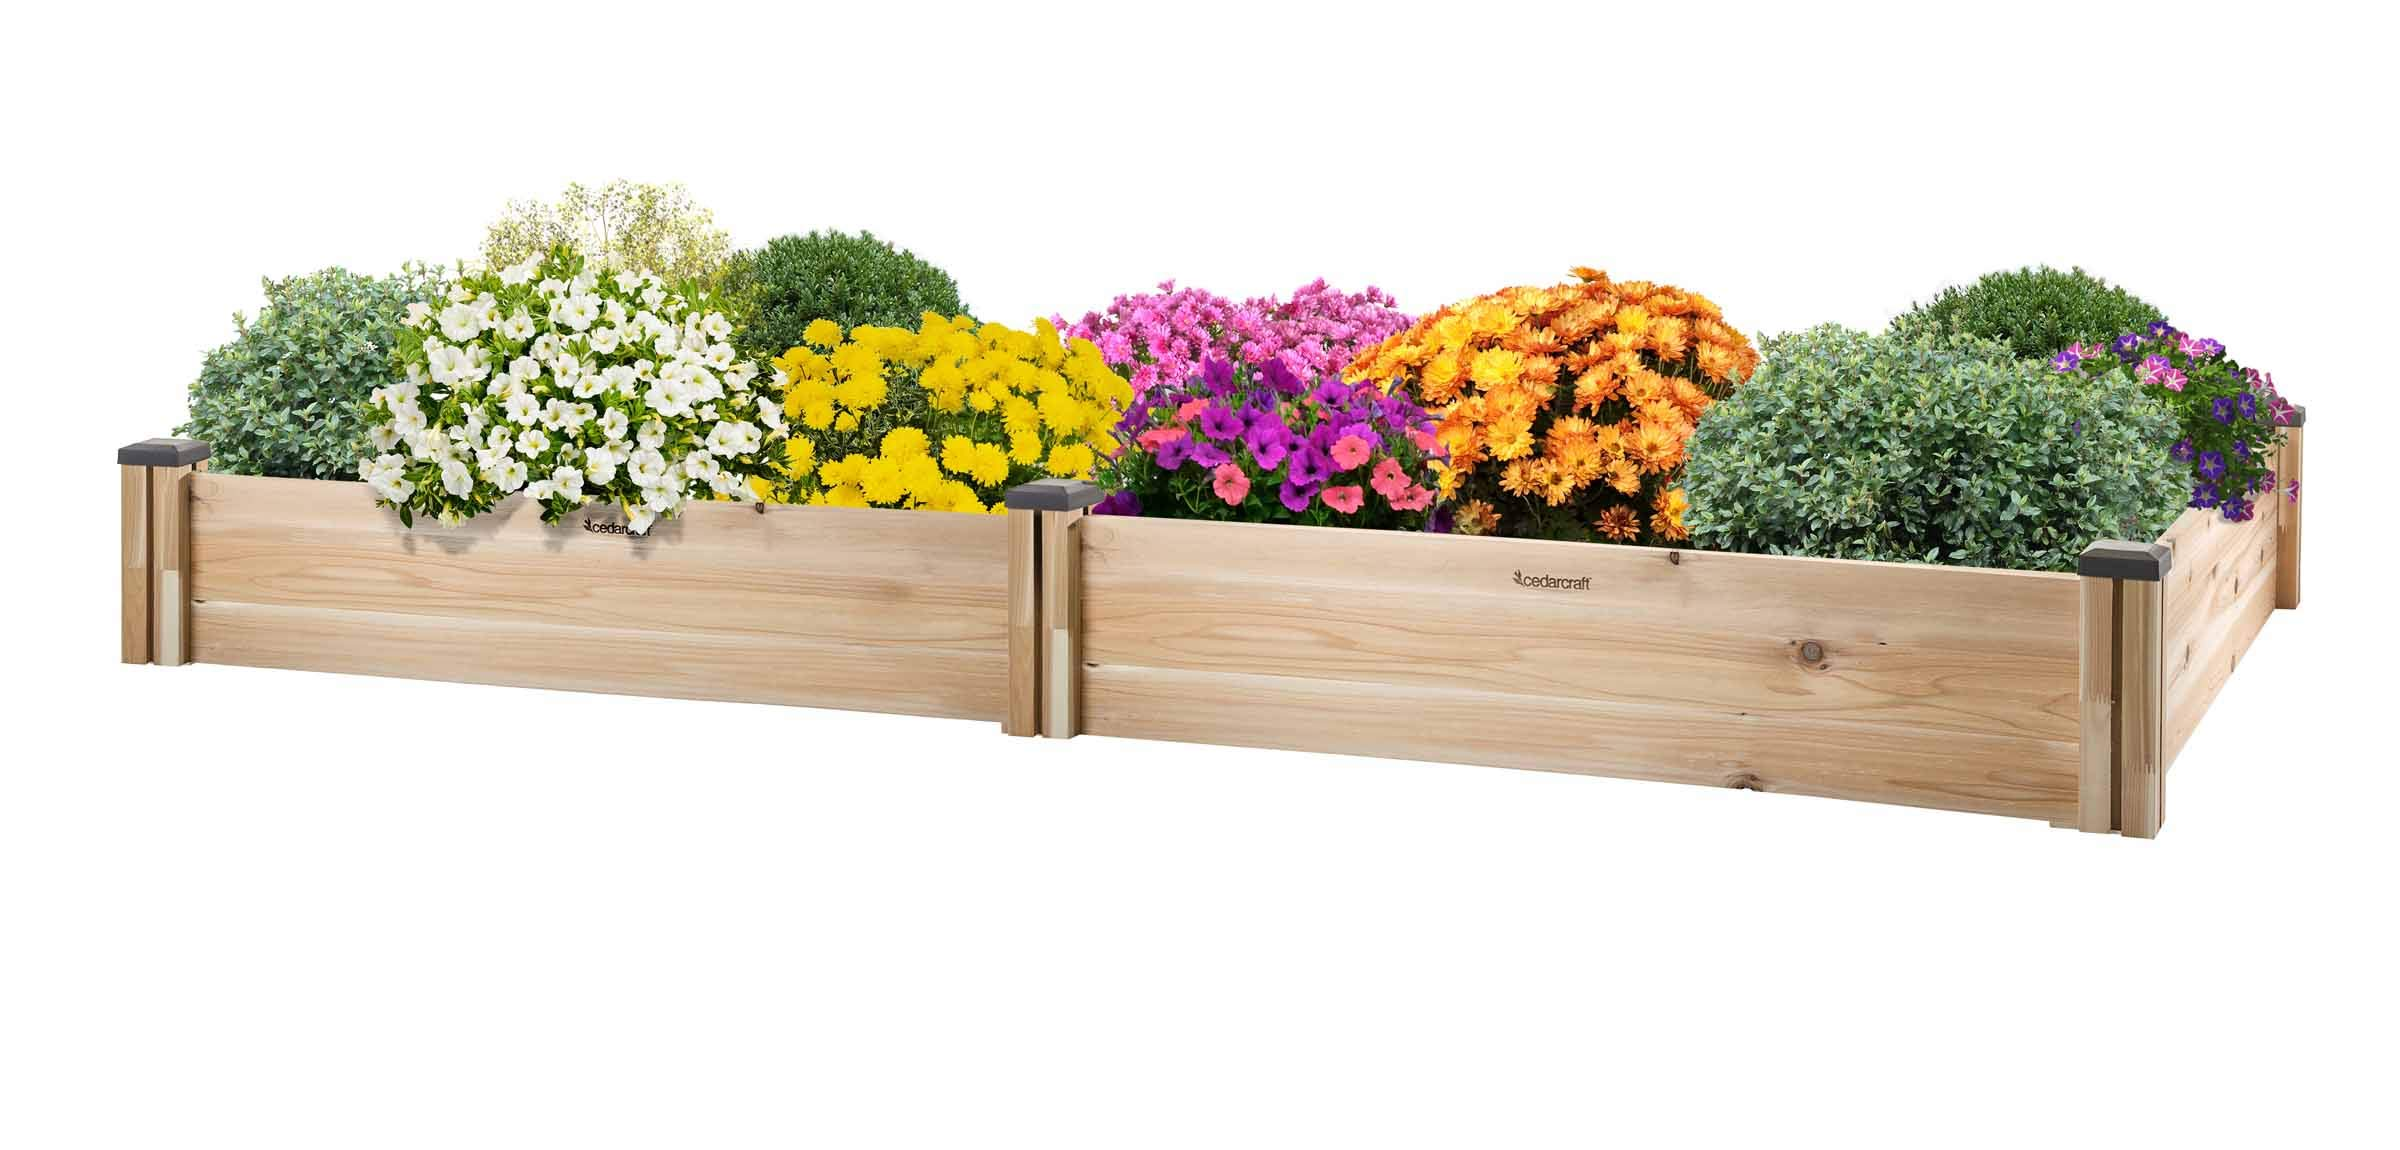 CedarCraft Raised Cedar Garden Bed (95'' X 49'' X 10''H) - Grow Fresh Vegetables, Herb Gardens, Flowers & Succulents. Beautiful Elevated Garden Bed for Your Yard and Home Gardening. No Tools Required.